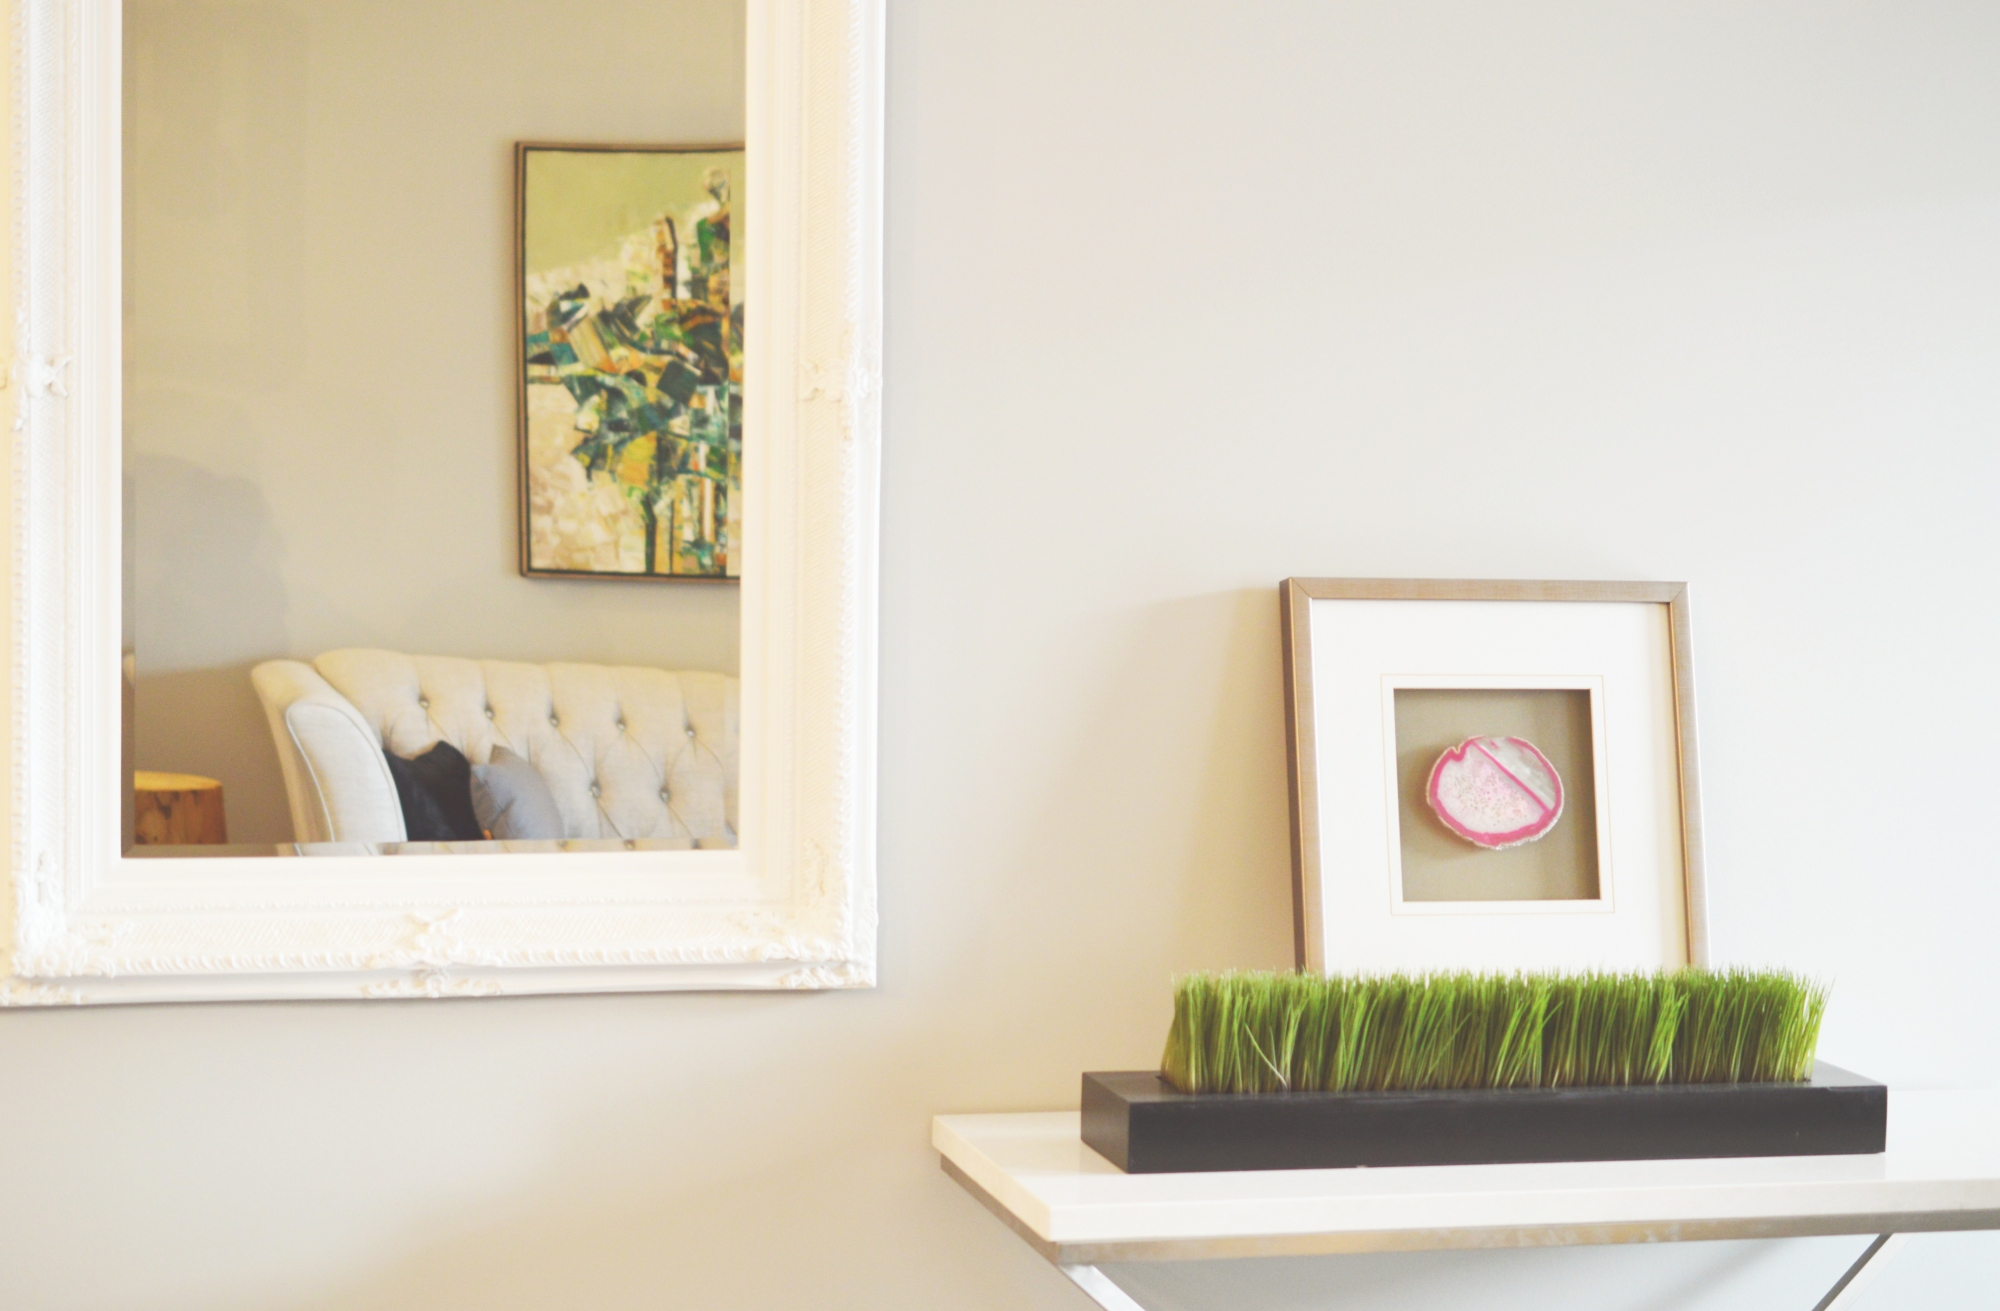 X Small Space Décor Ideas and Tips